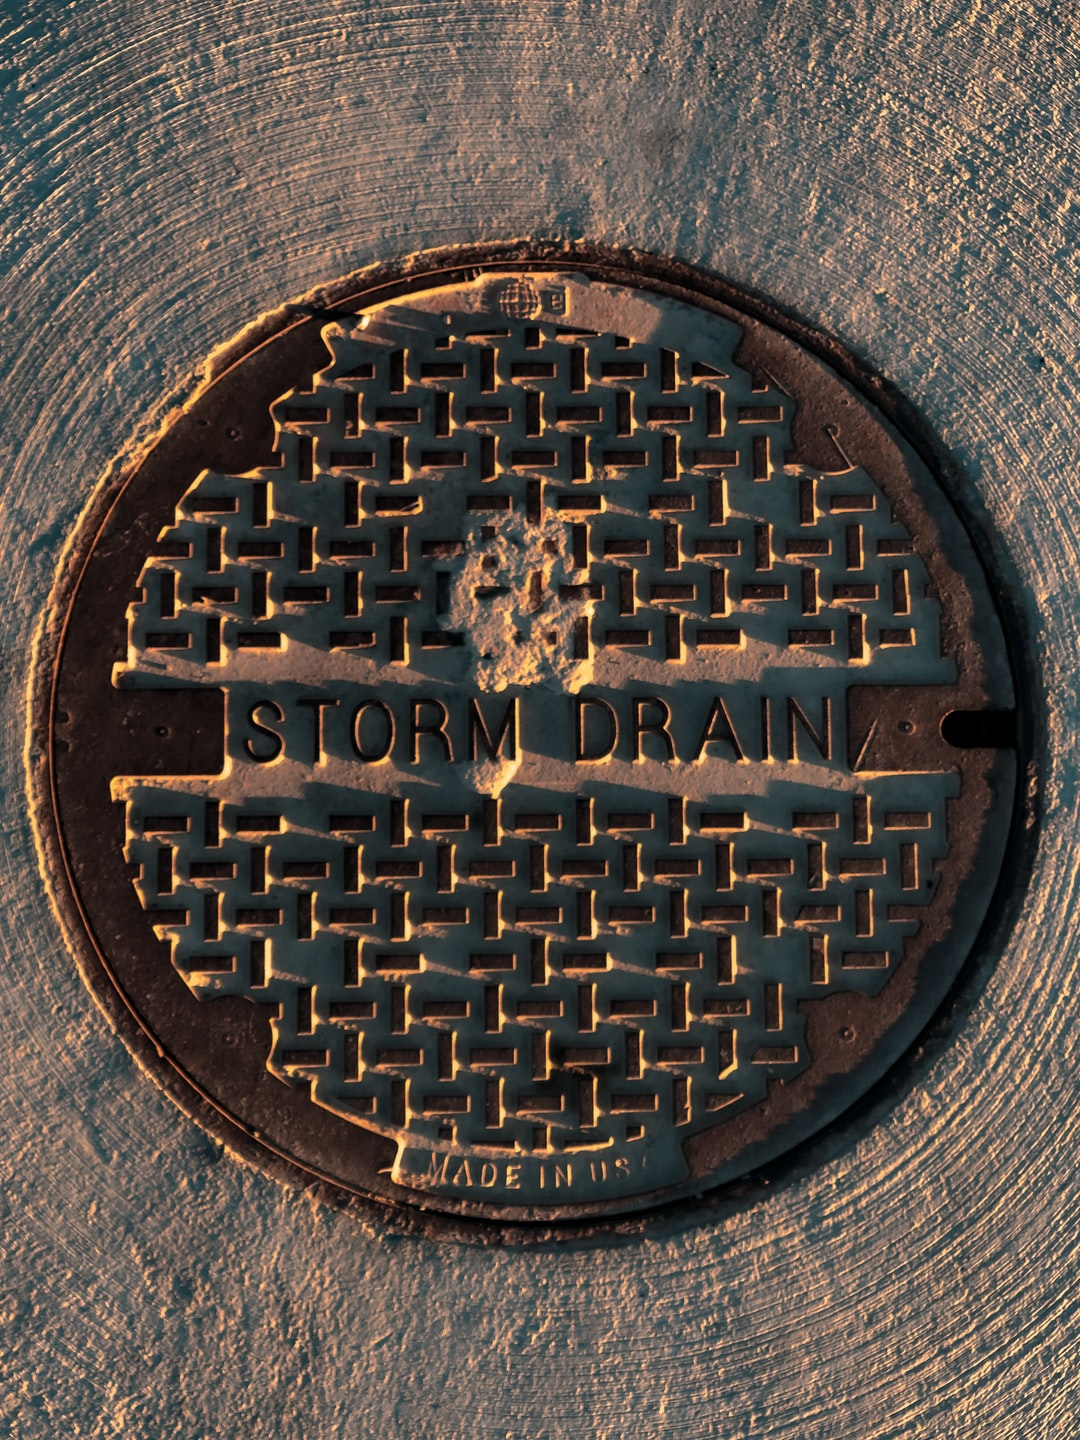 Circlular storm drain lid at golden hour